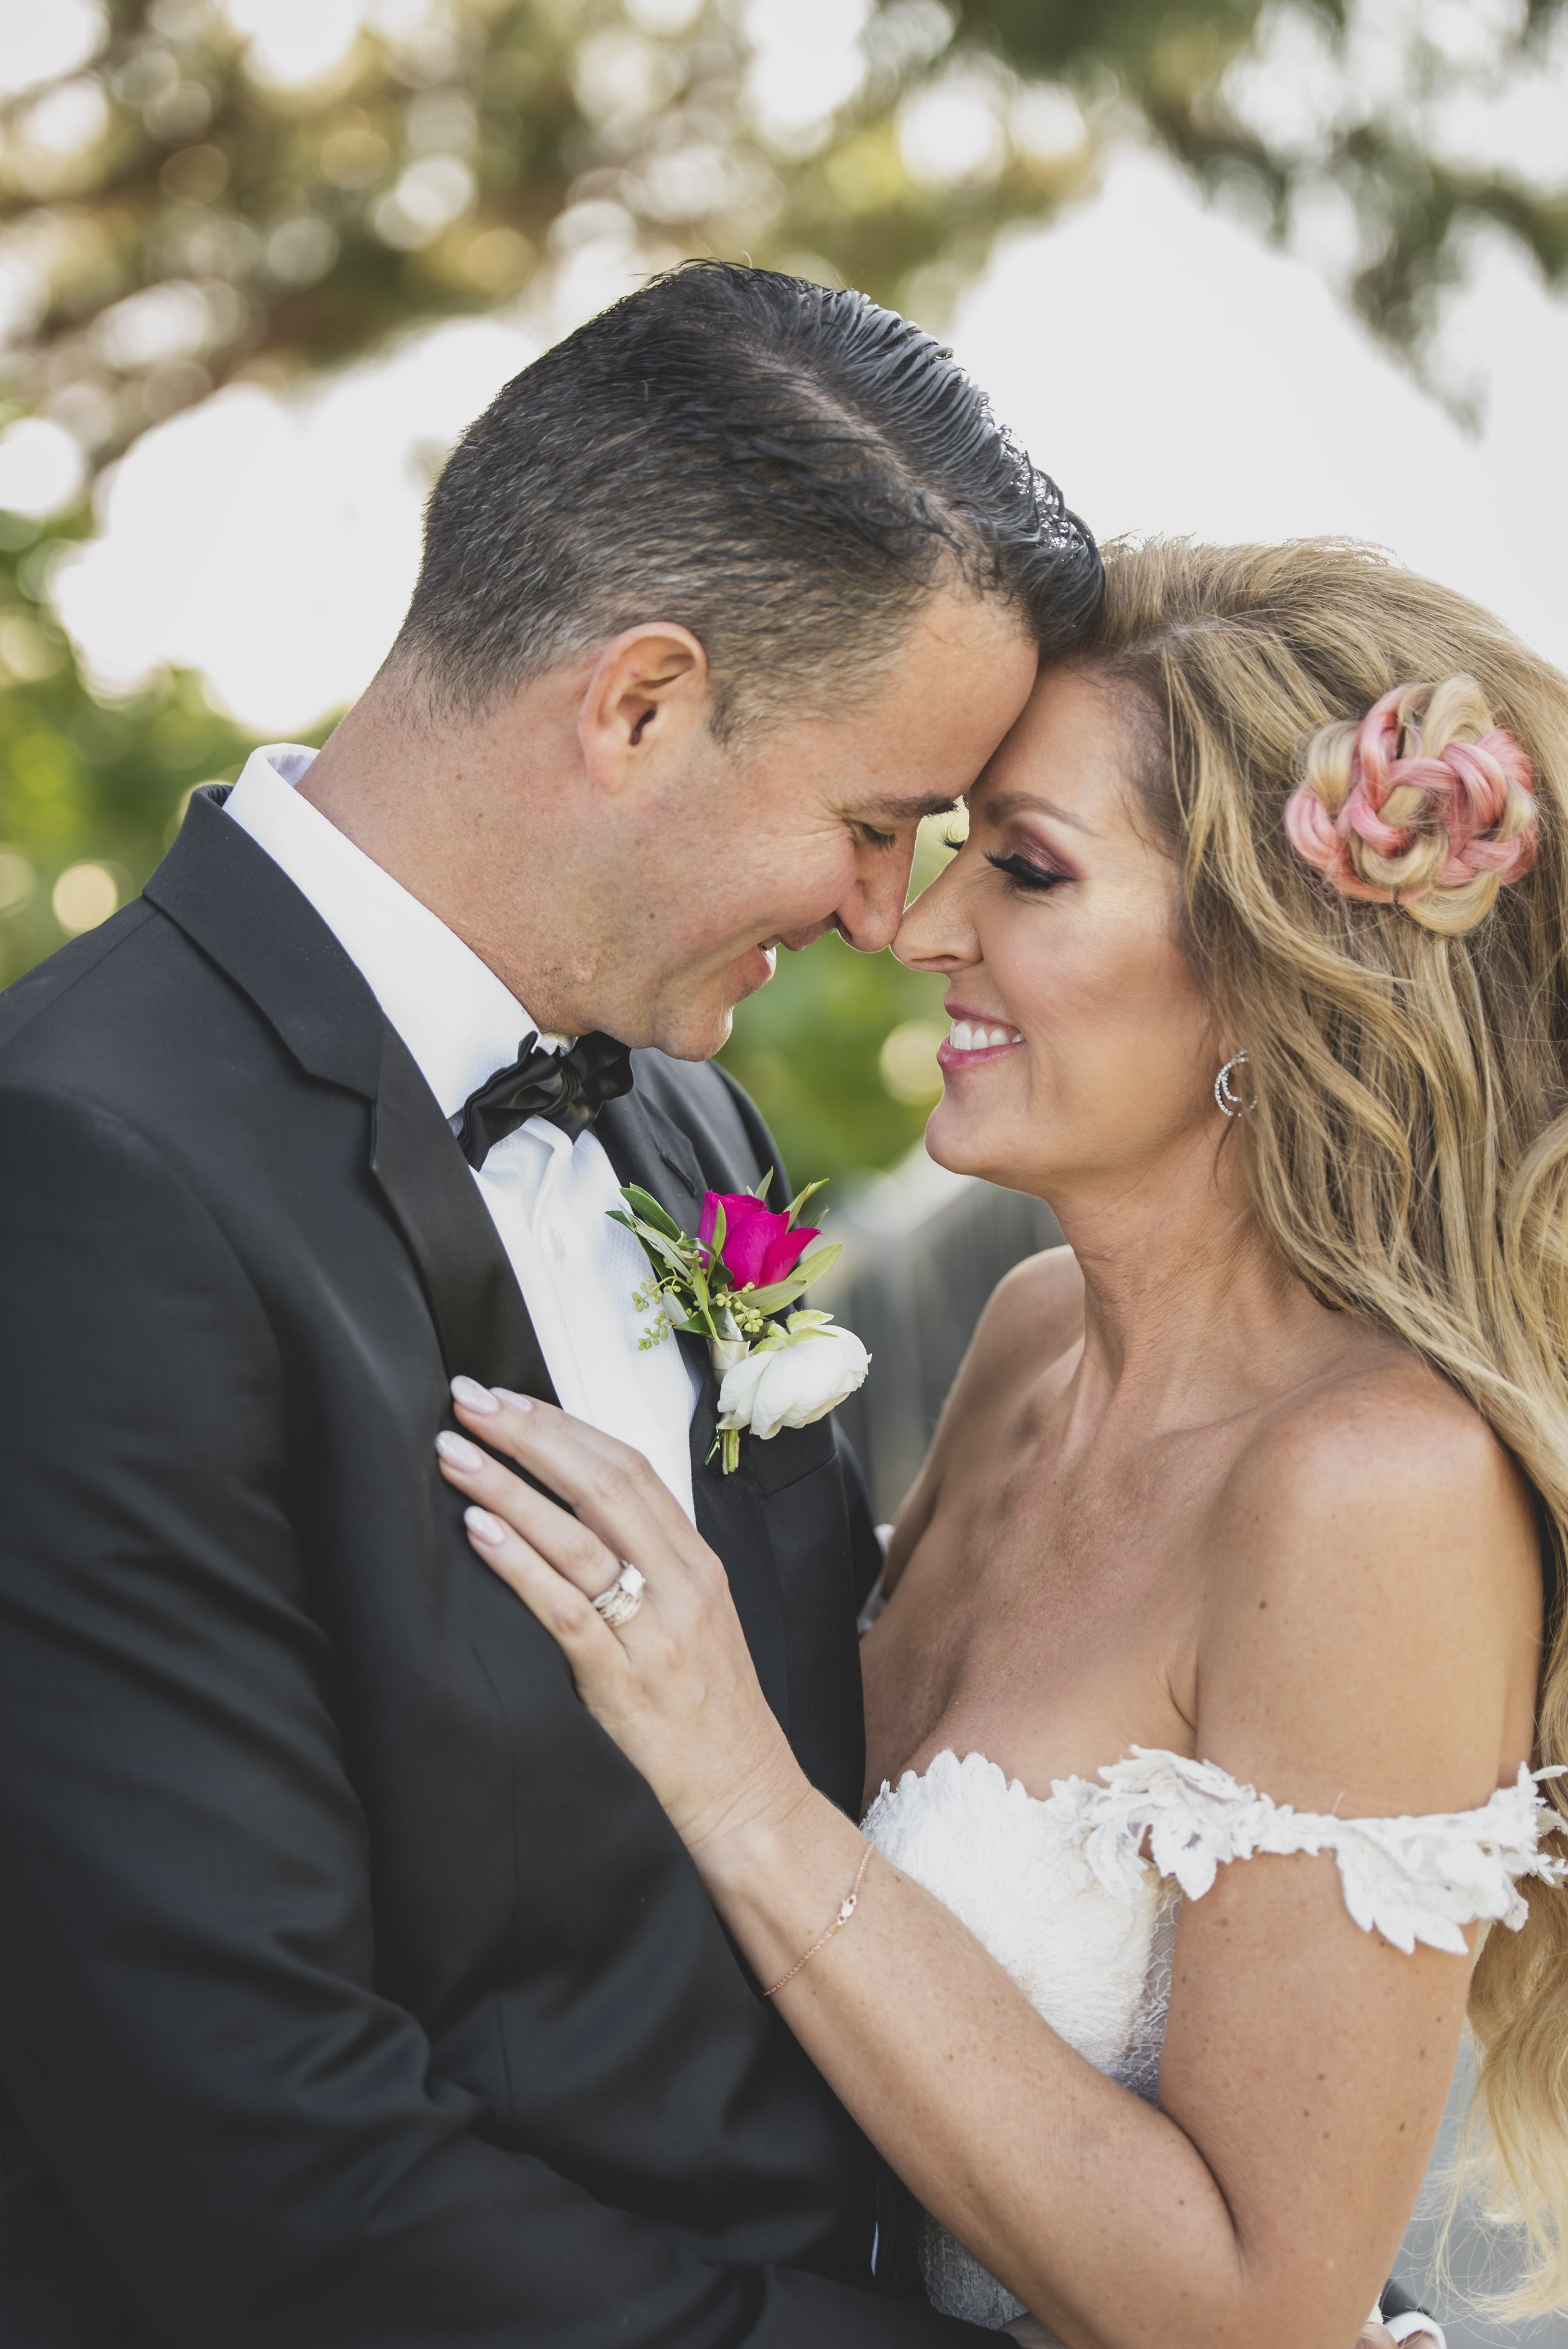 Wedding Photography Packages - Heritage Park, Dana Point, CA - Bride and groom touching foreheads with smiles on their faces.